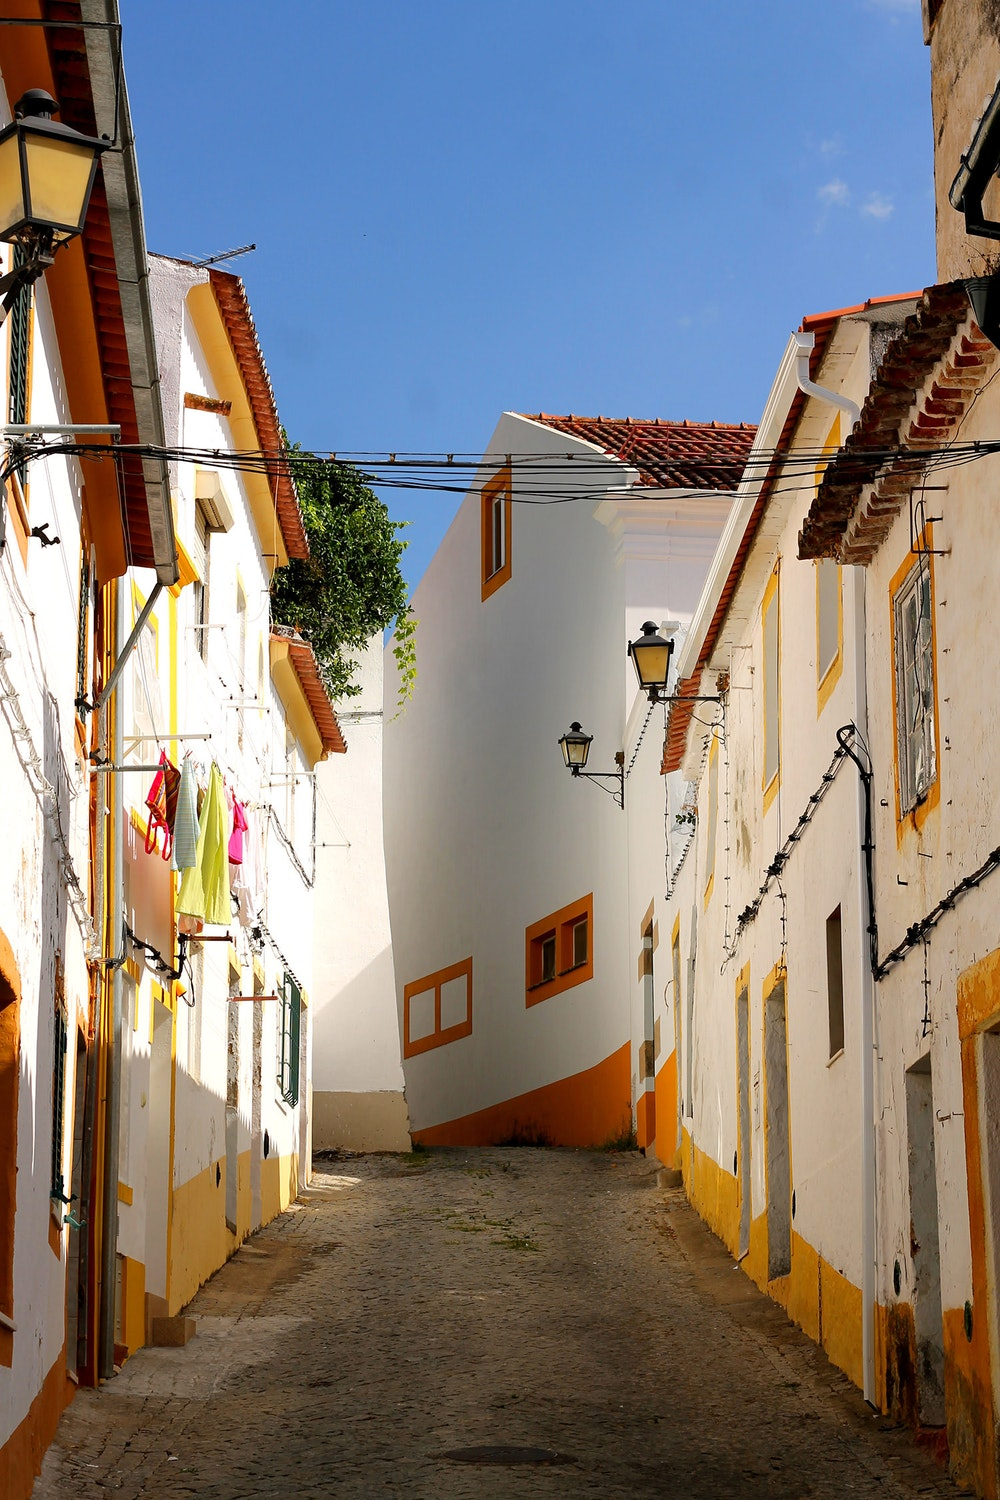 A quite street with no cars in Portalegre